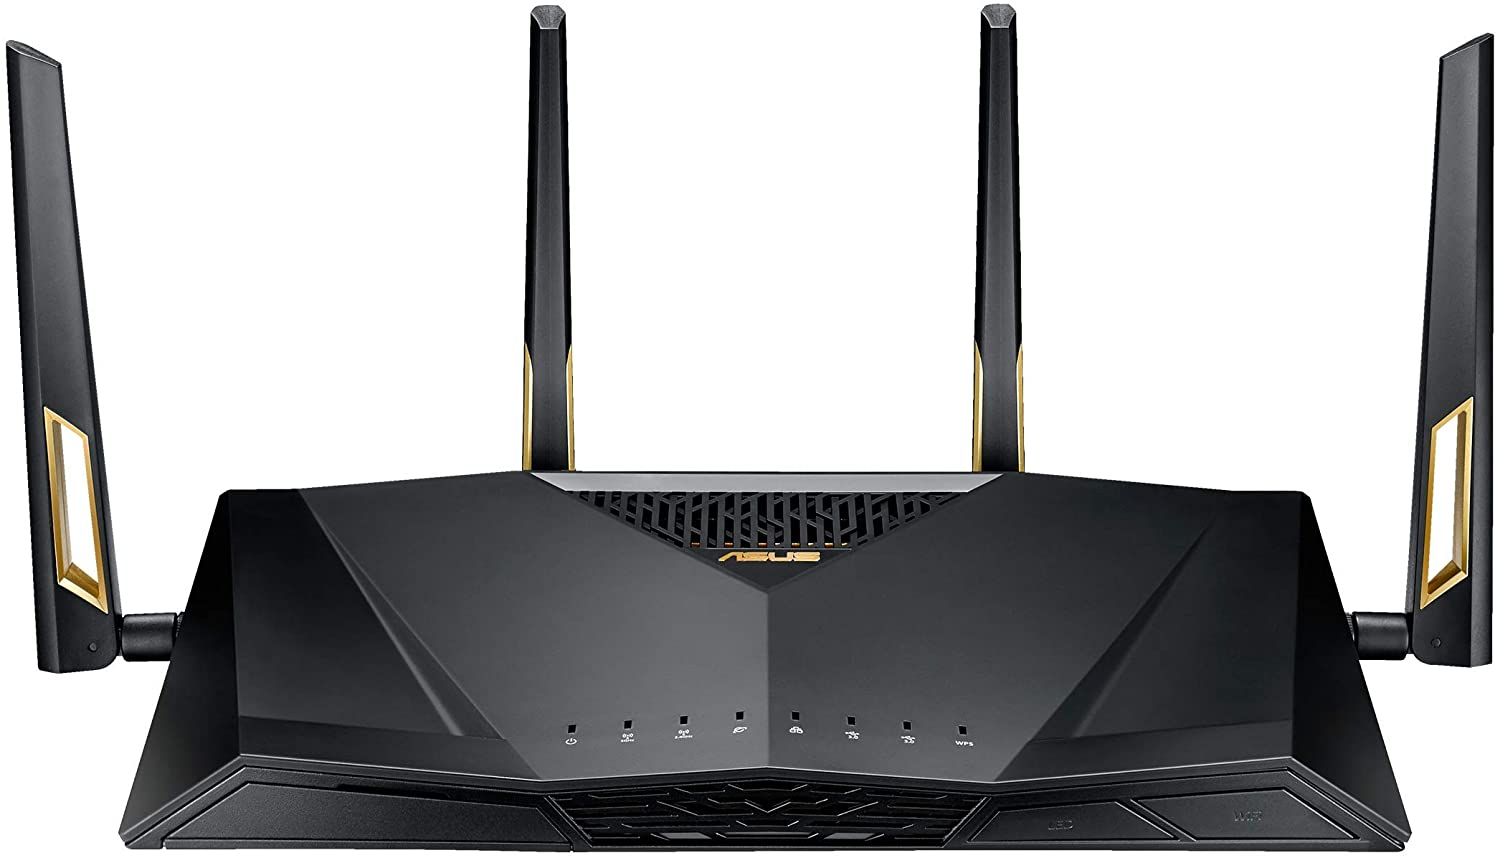 Asus RT-AX88U AX6000 Dual-Band Wi-Fi Router, AiMesh Compatible for Mesh Wi-Fi System